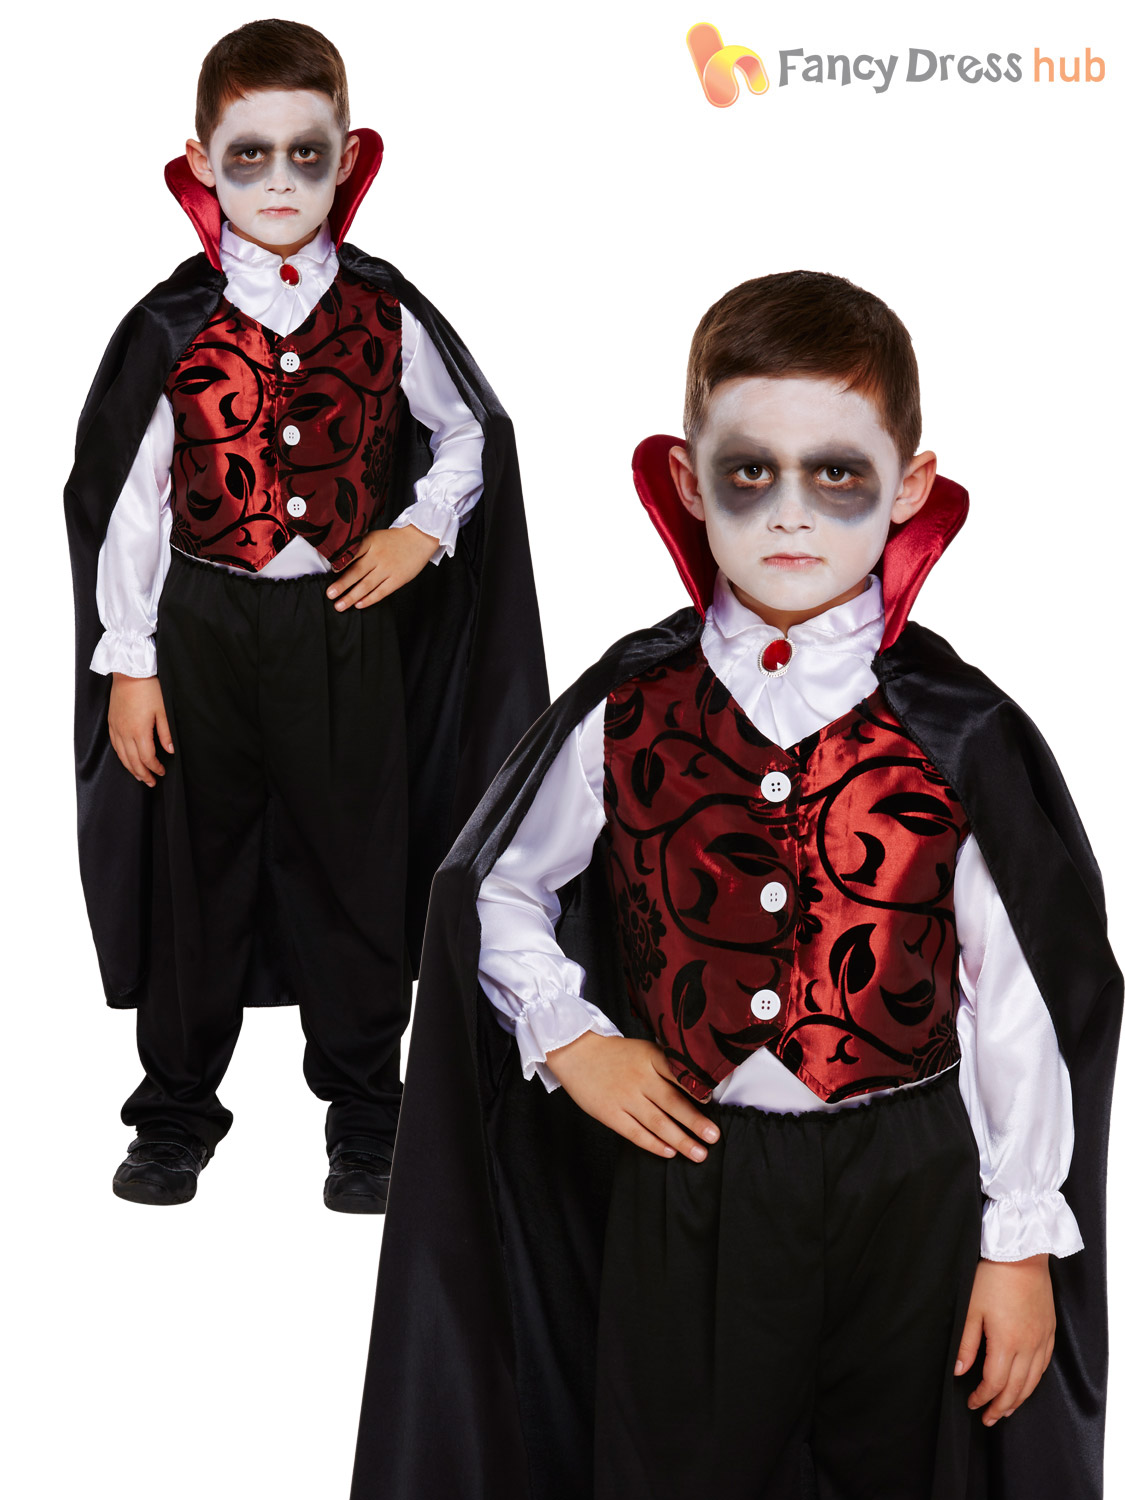 To acquire Halloween Costume for boys pictures picture trends